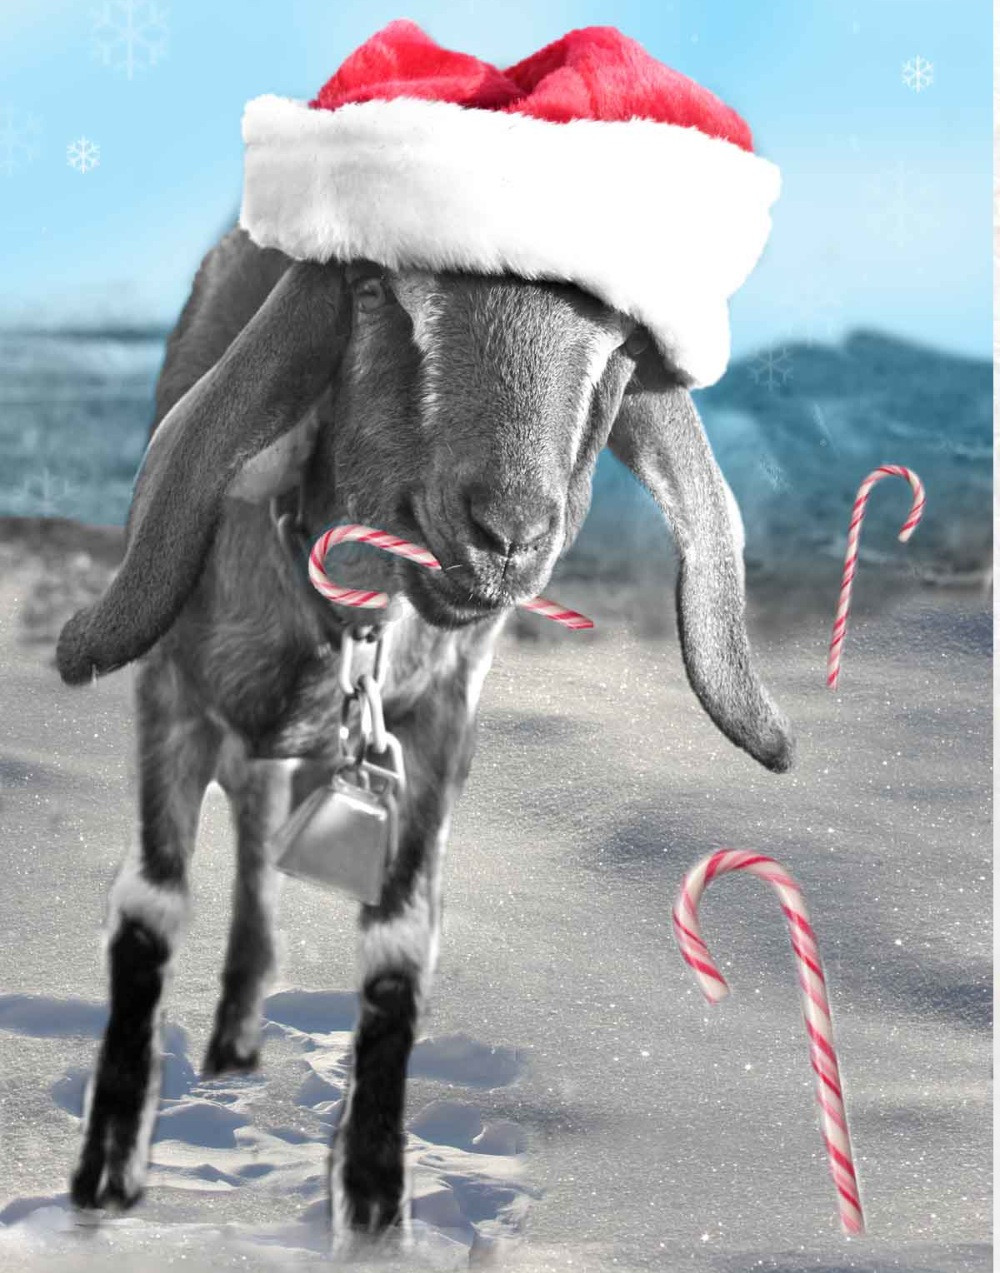 Christmas goat with candy canes